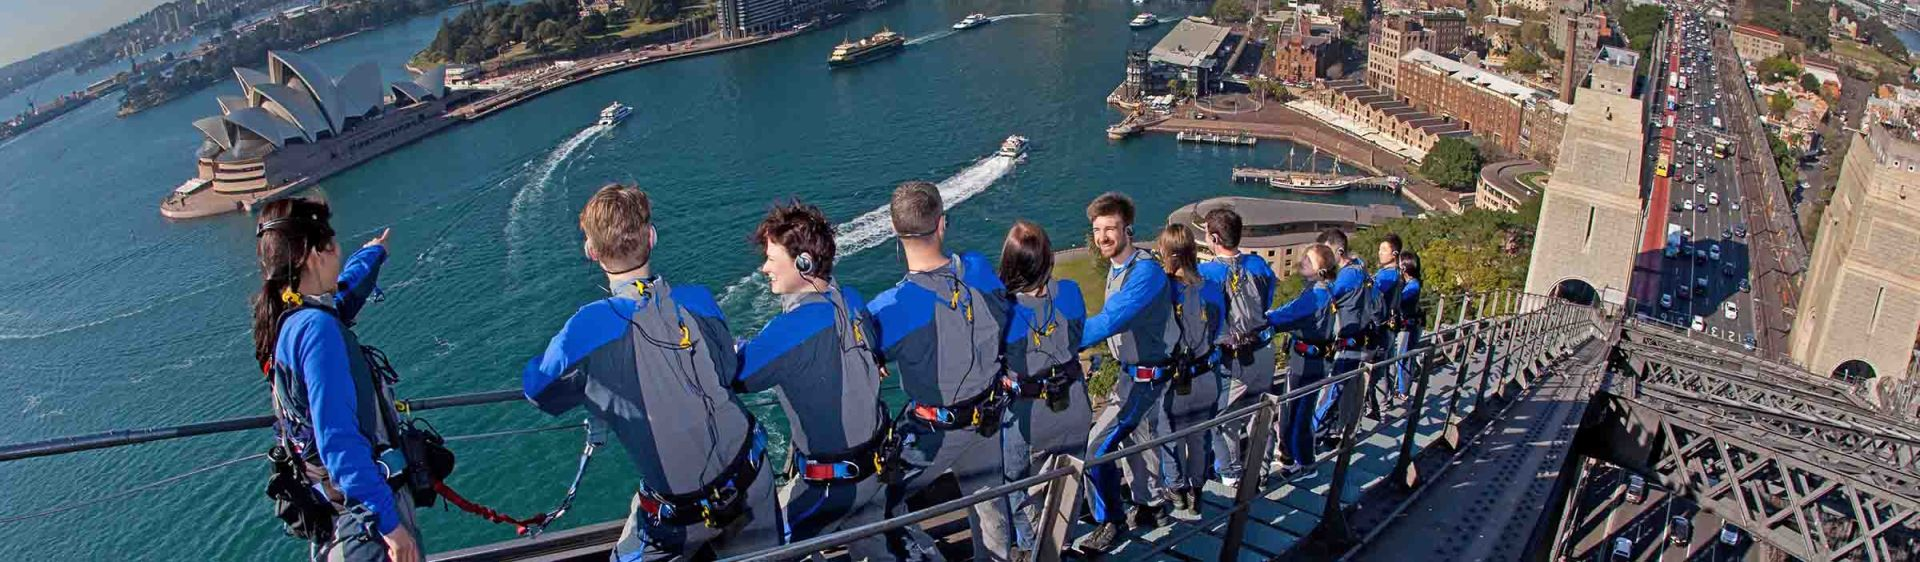 BridgeClimb on the Sydney Harbour Bridge